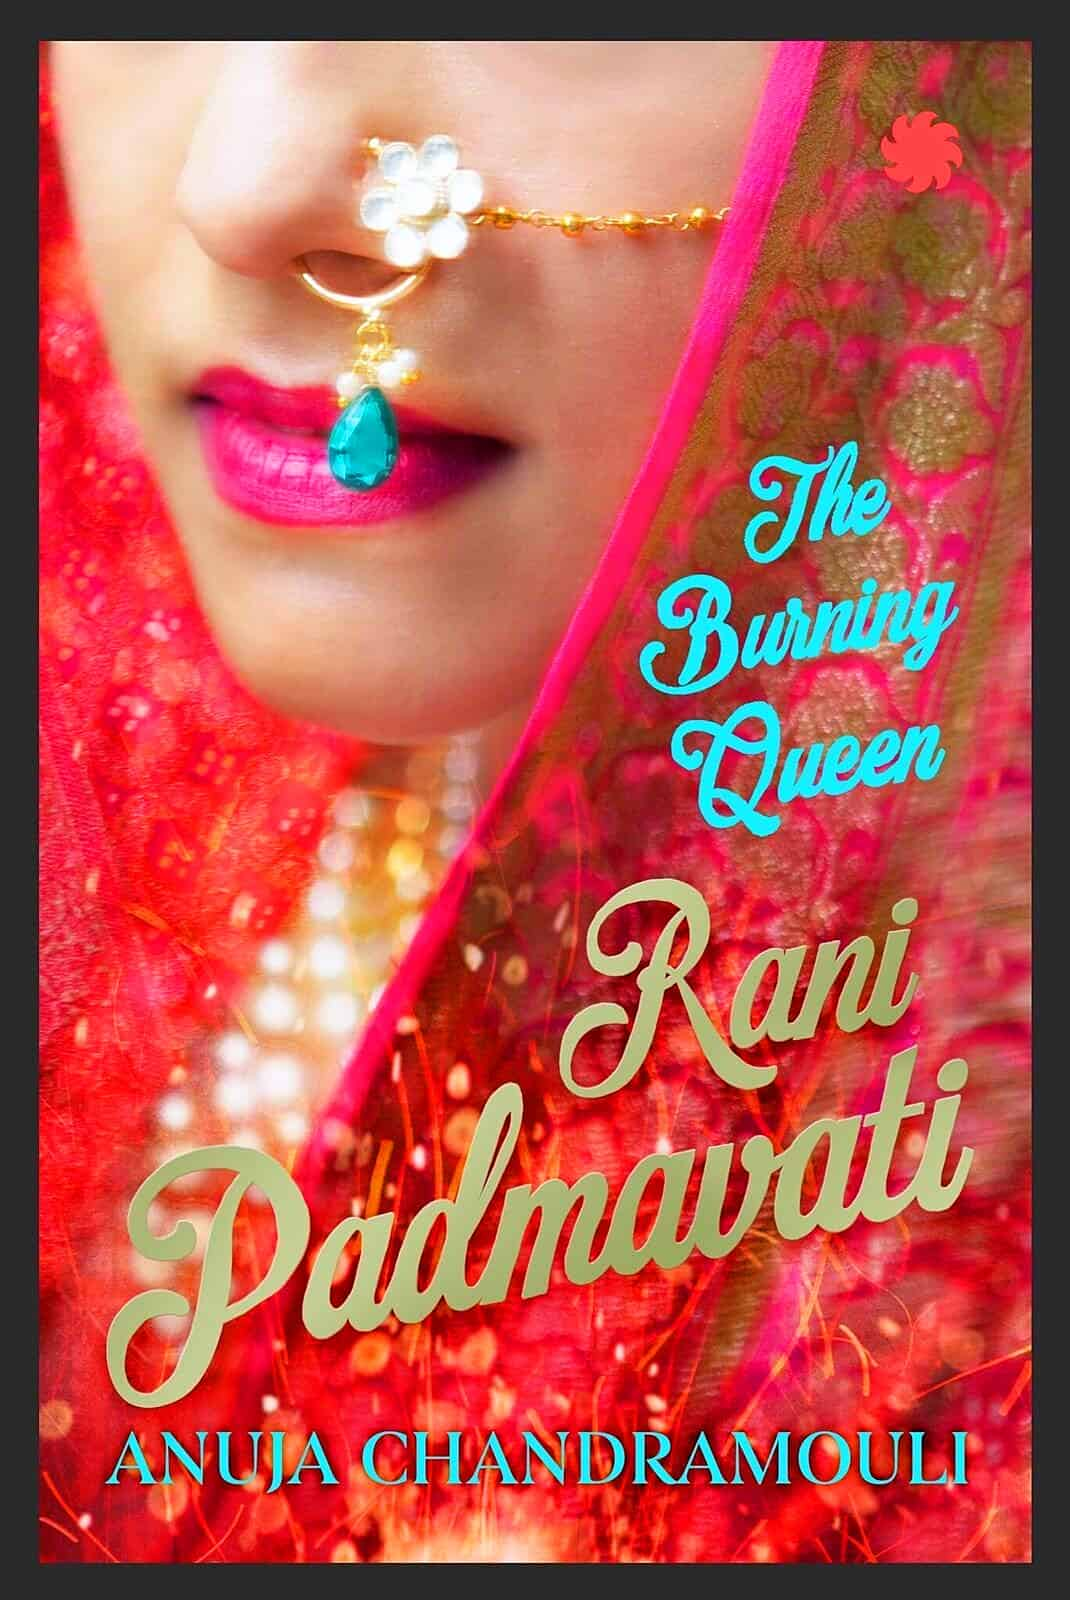 Rani Padmavati: The Burning Queen by Anuja Chandramouli